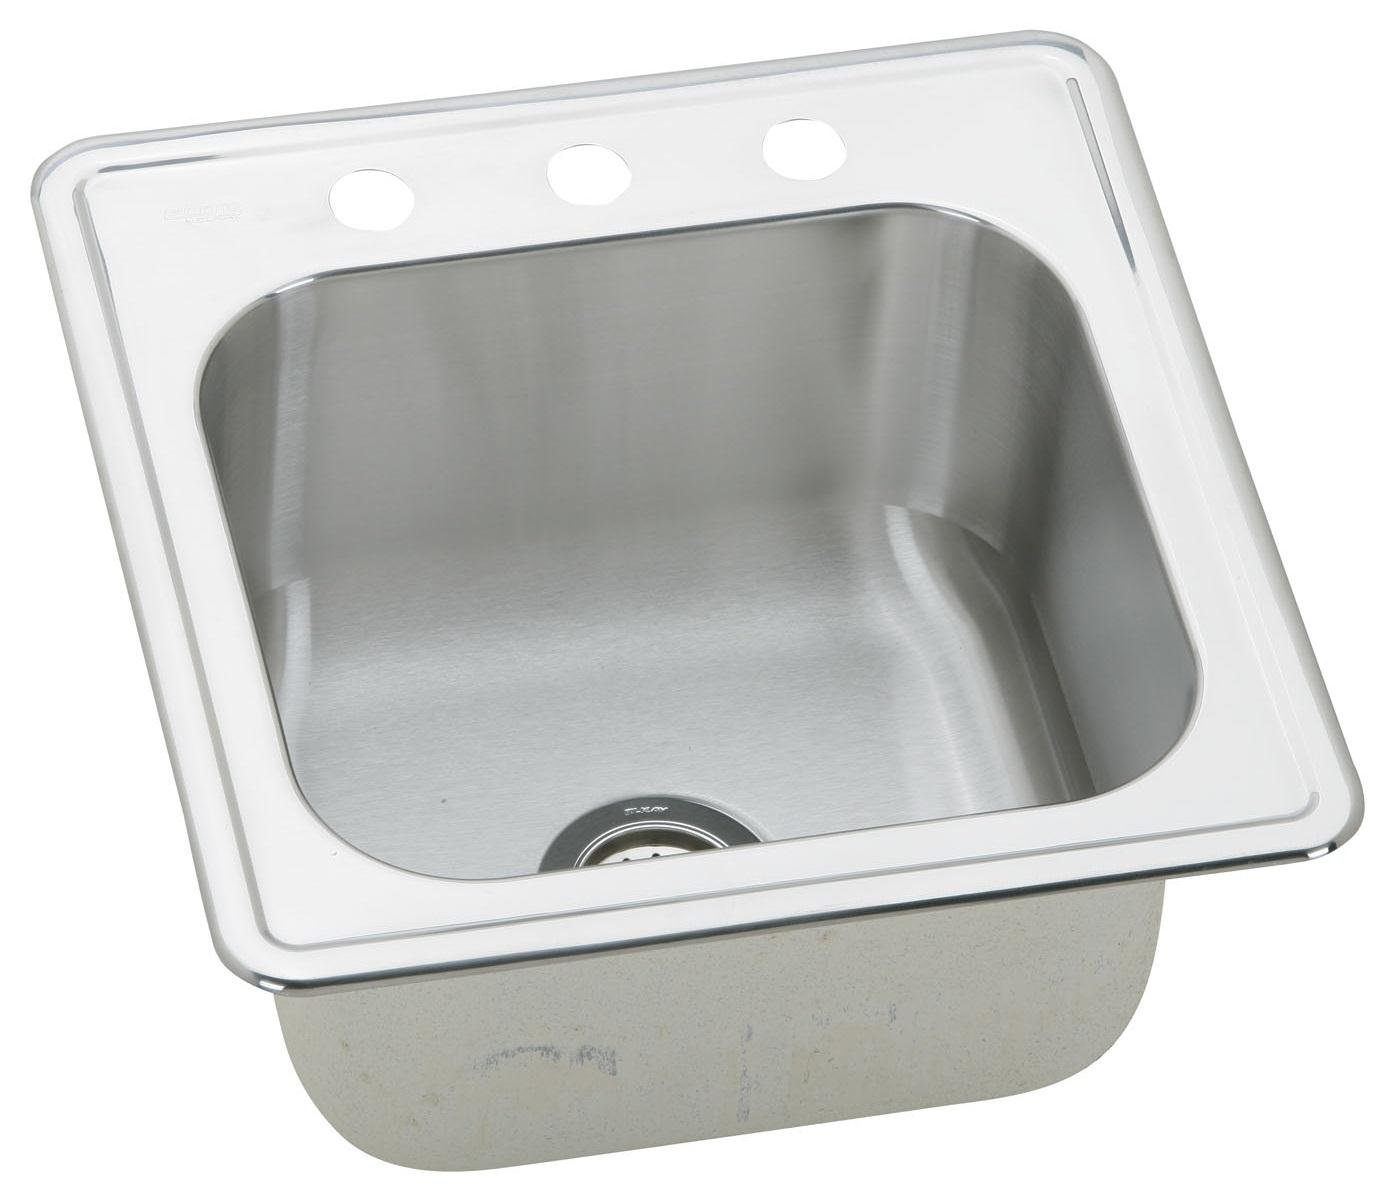 Lovely Elkay ESE2020103 Gourmet Elite 20 Inch By 20 Inch Stainless Steel Single  Bowl Self Rimming Three Hole Kitchen Sink, Satin Finish     Amazon.com